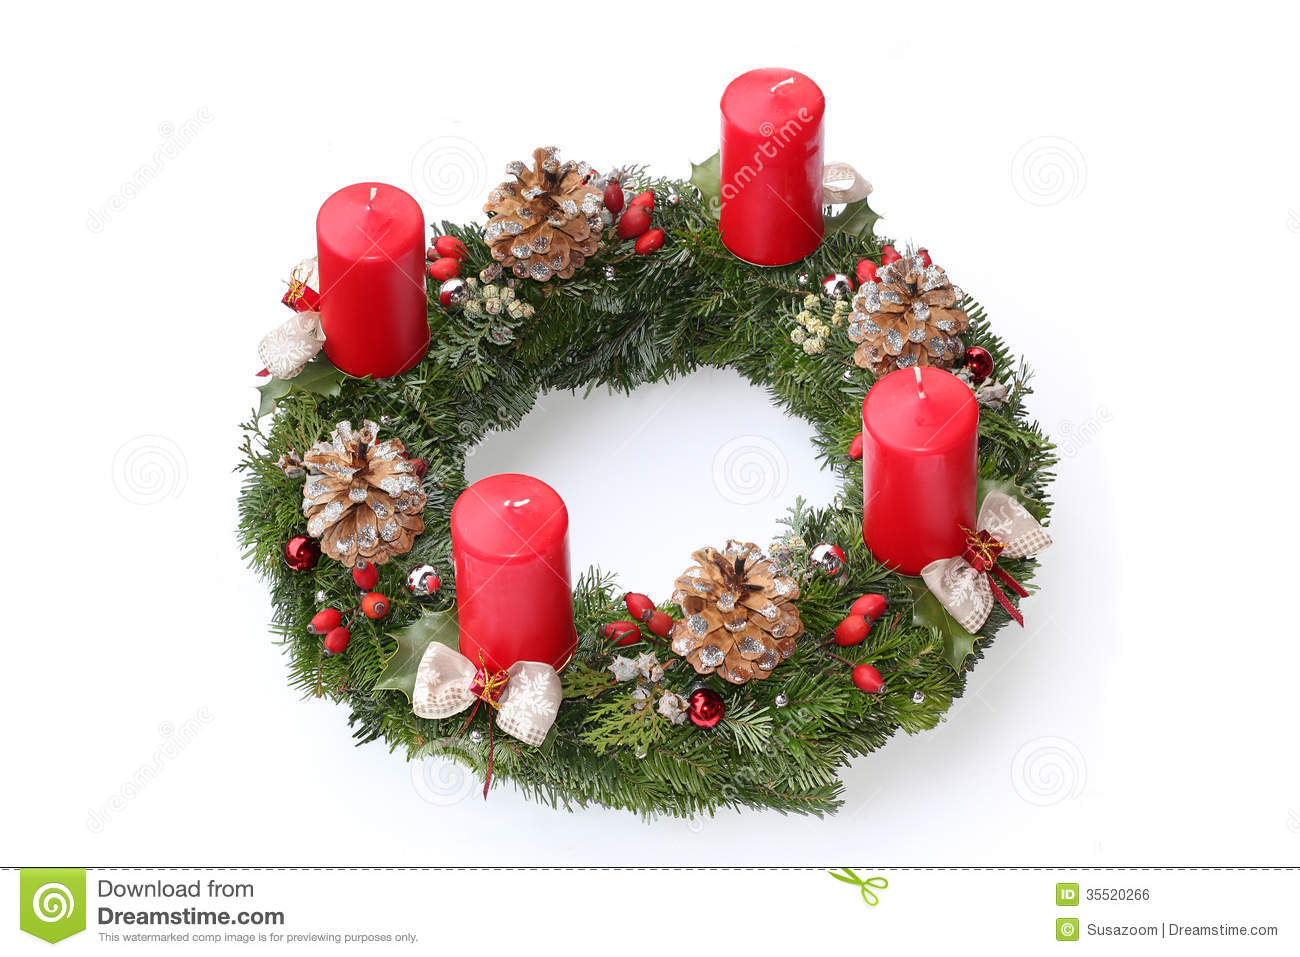 Christmas Decoration Ideas 2013 Advent Wreath With Red Candles Natural Decoration Stock